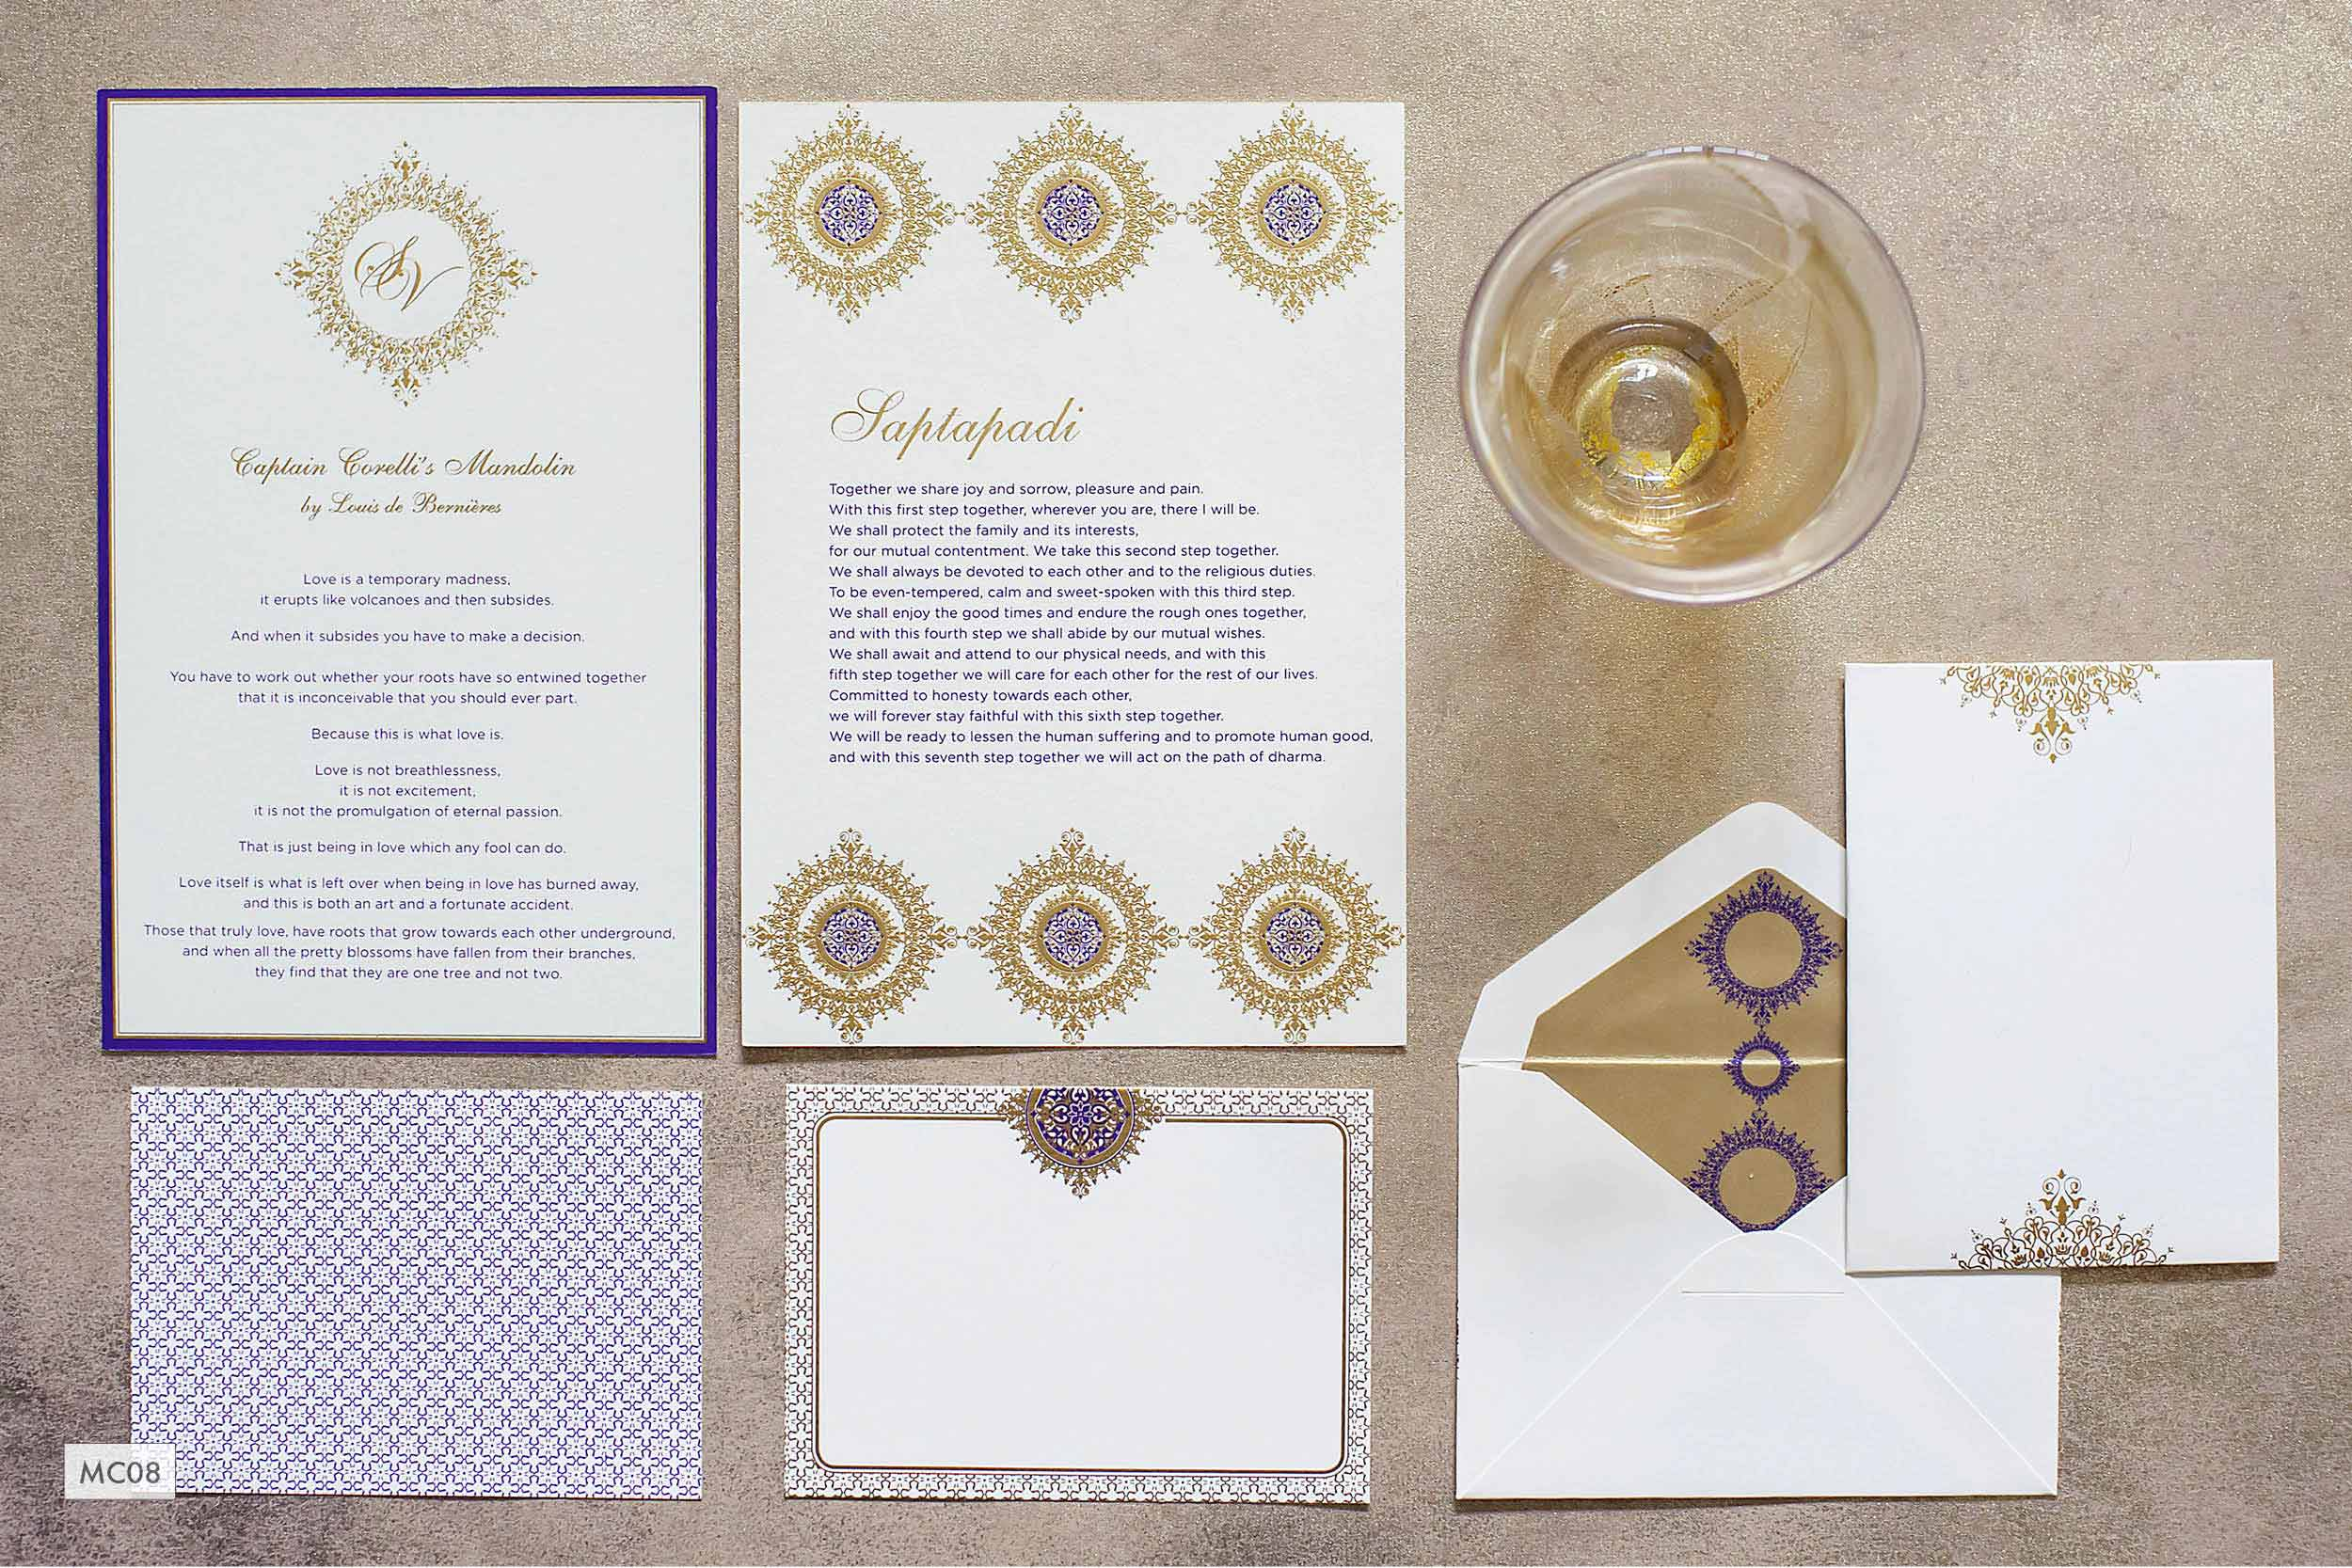 multicultural-wedding_purple-and-gold2_ananyacards.com.jpg